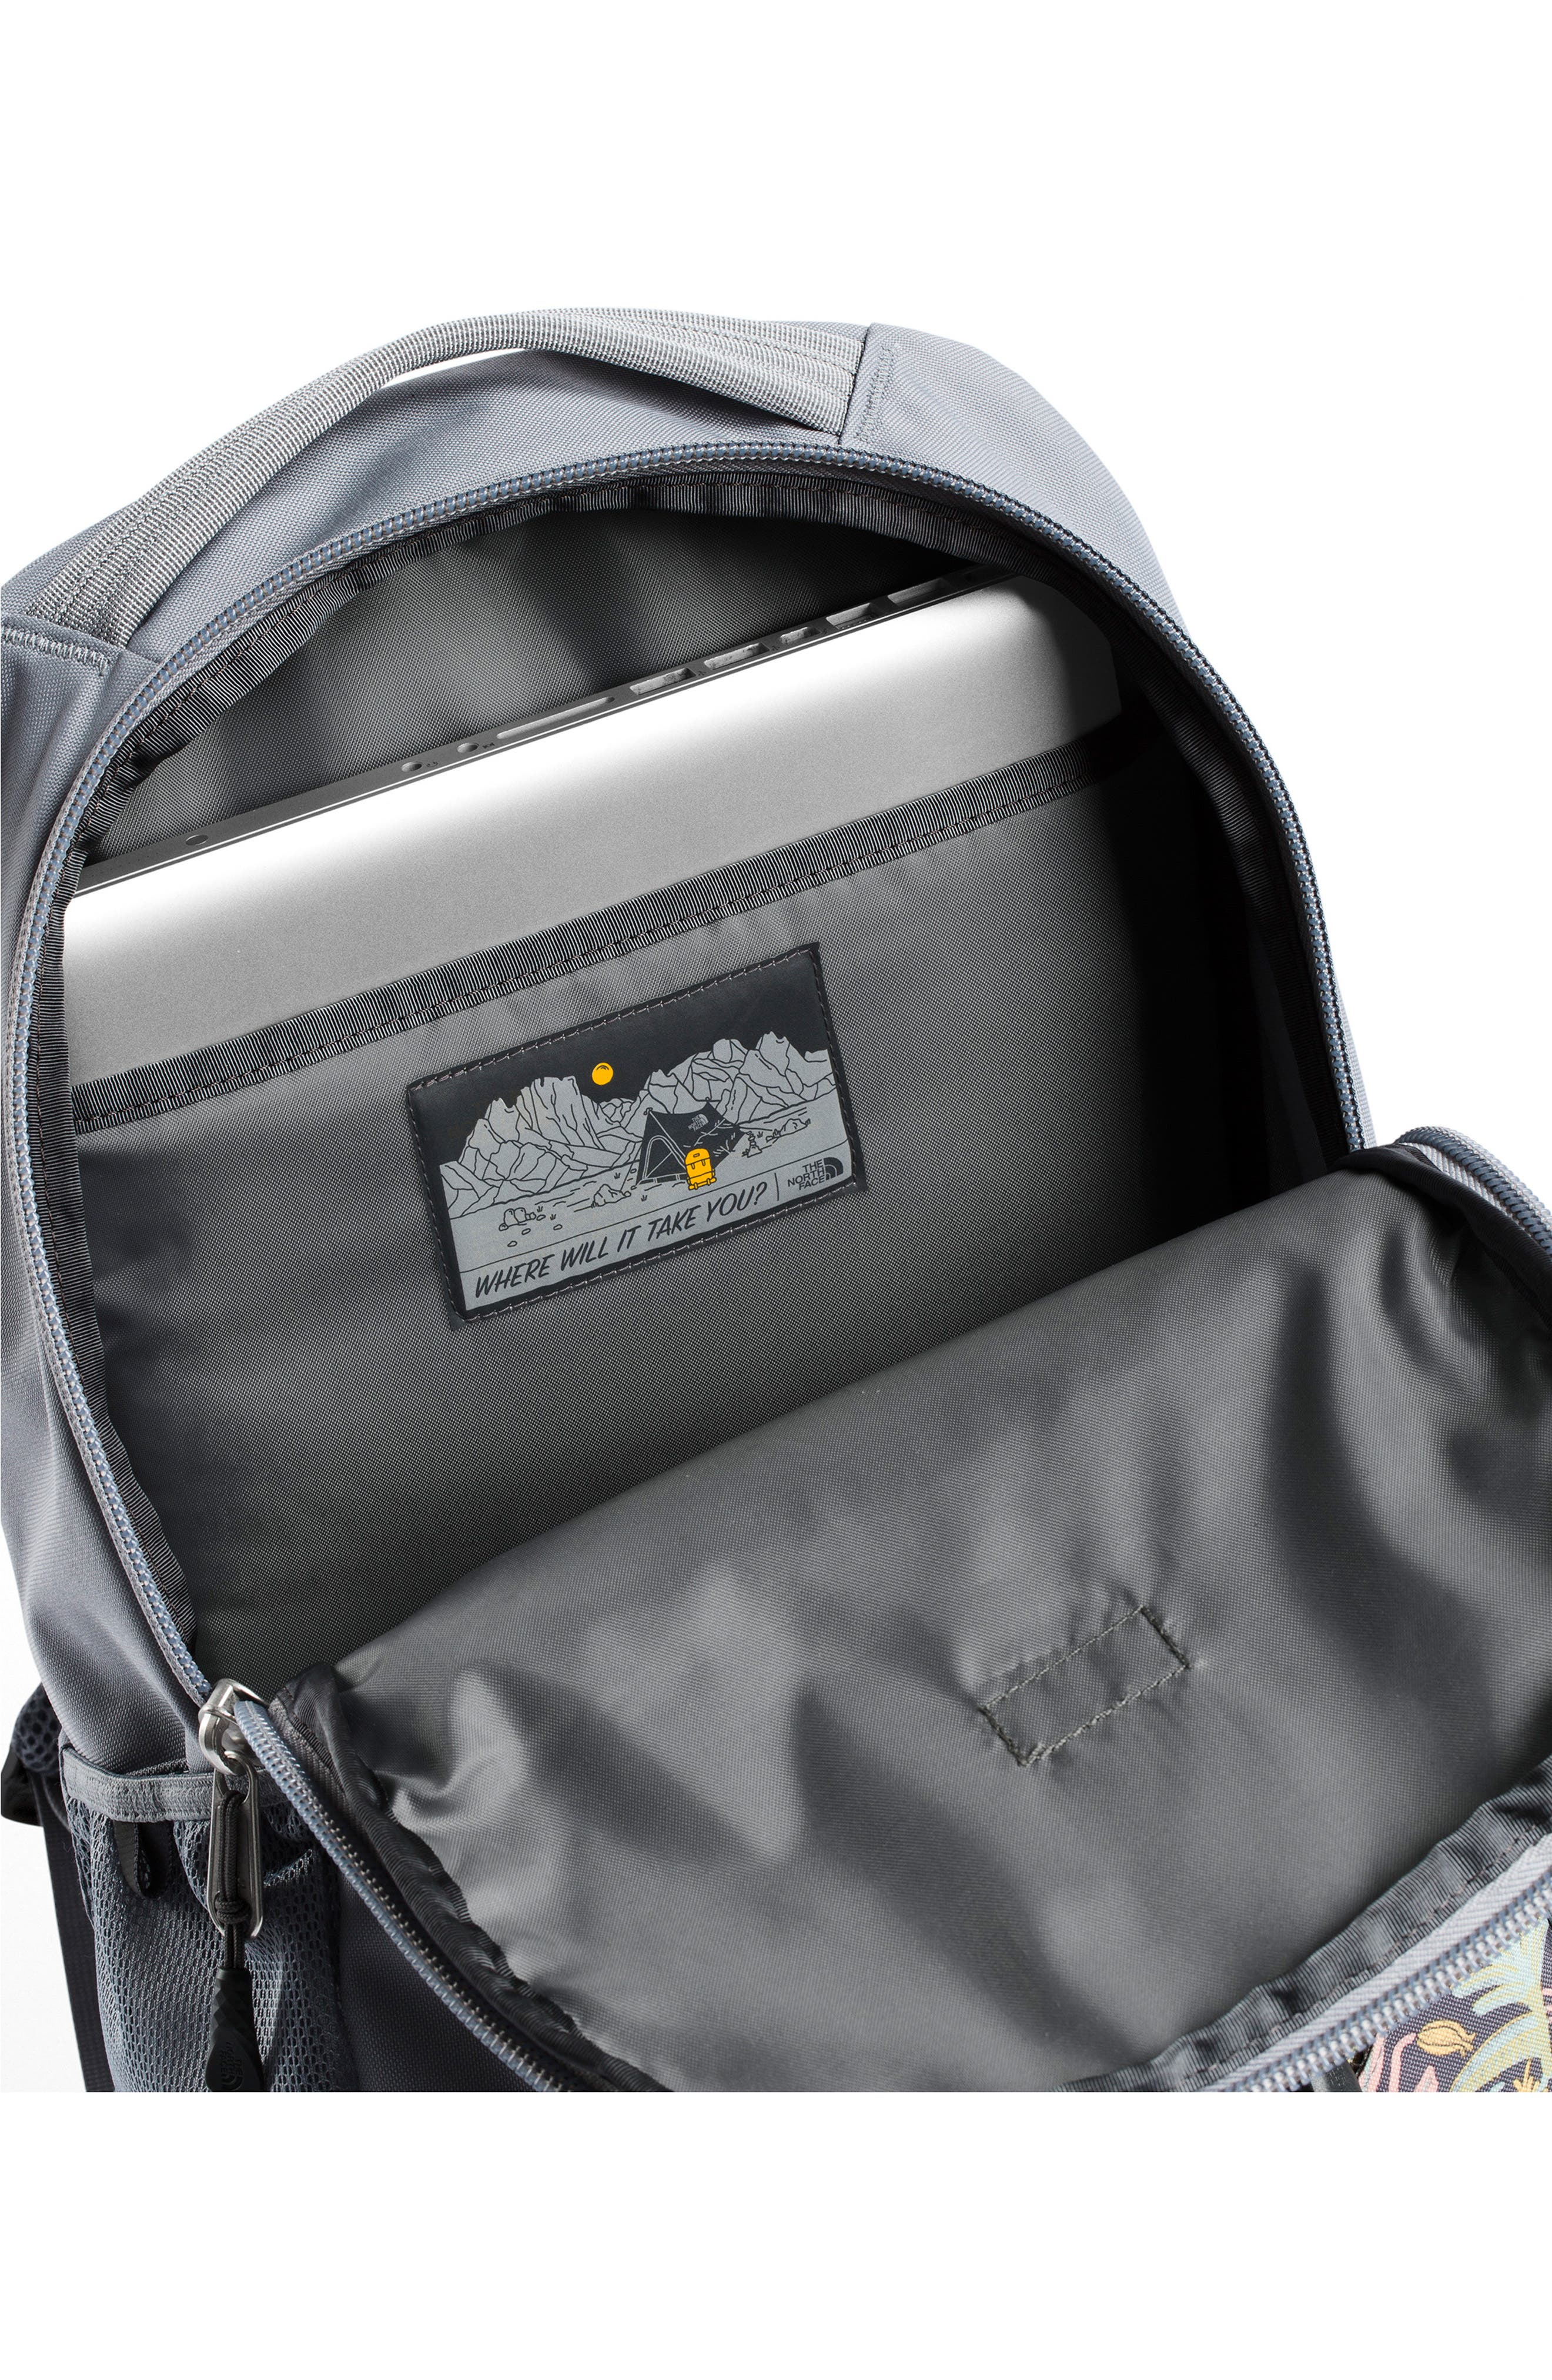 'Jester' Backpack,                             Alternate thumbnail 4, color,                             GREY FLORAL PRINT/ MID GREY